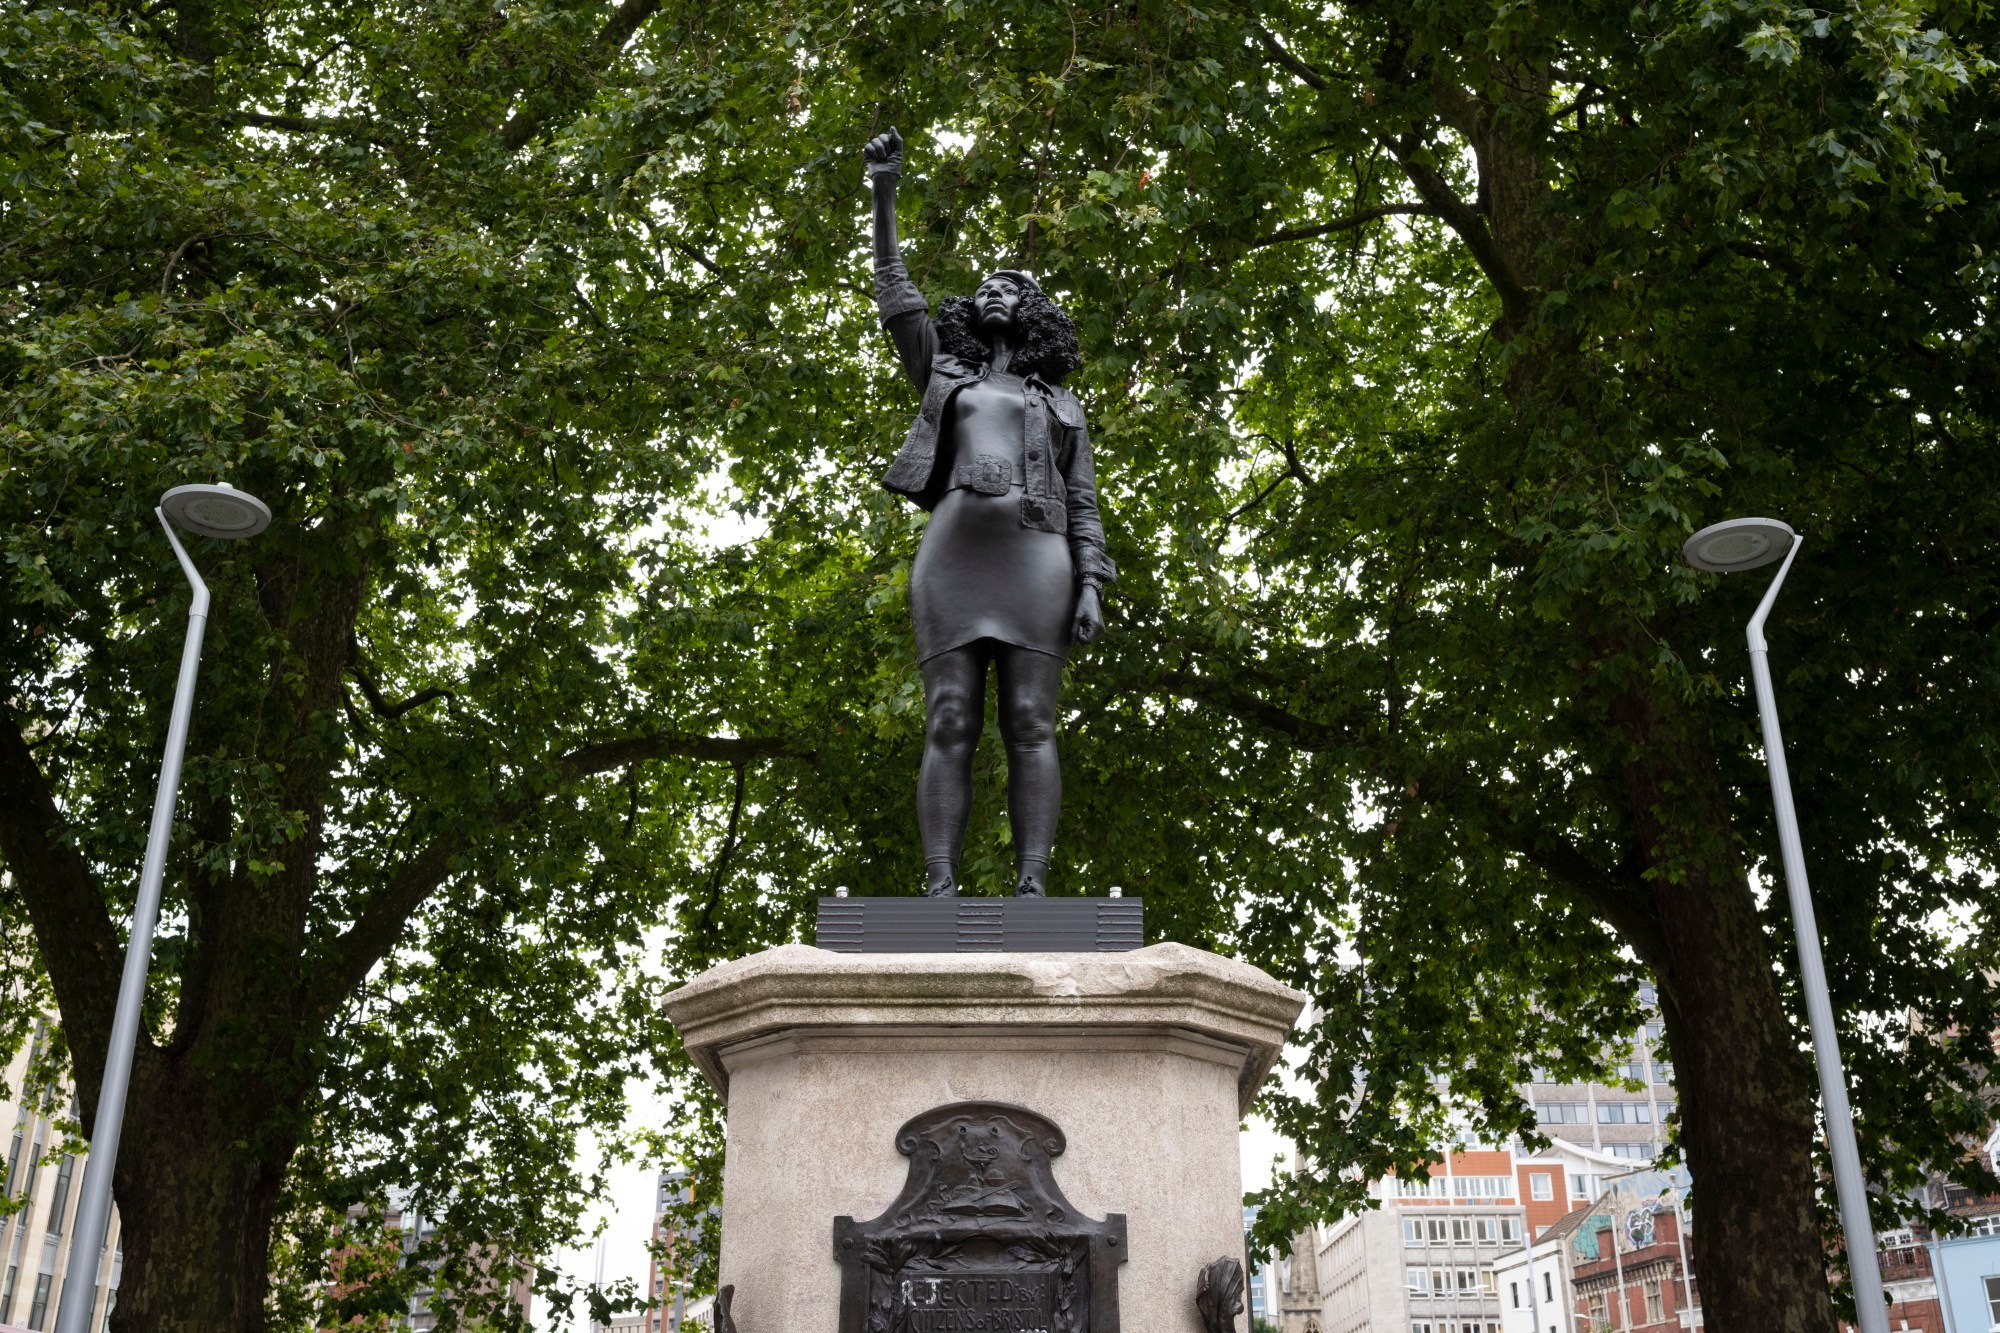 A new sculpture of Black Lives Matter protester Jen Reid stands on the plinth where the Edward Colston statue used to stand on July 15, 2020 in Bristol, England. (Matthew Horwood/Getty Images)